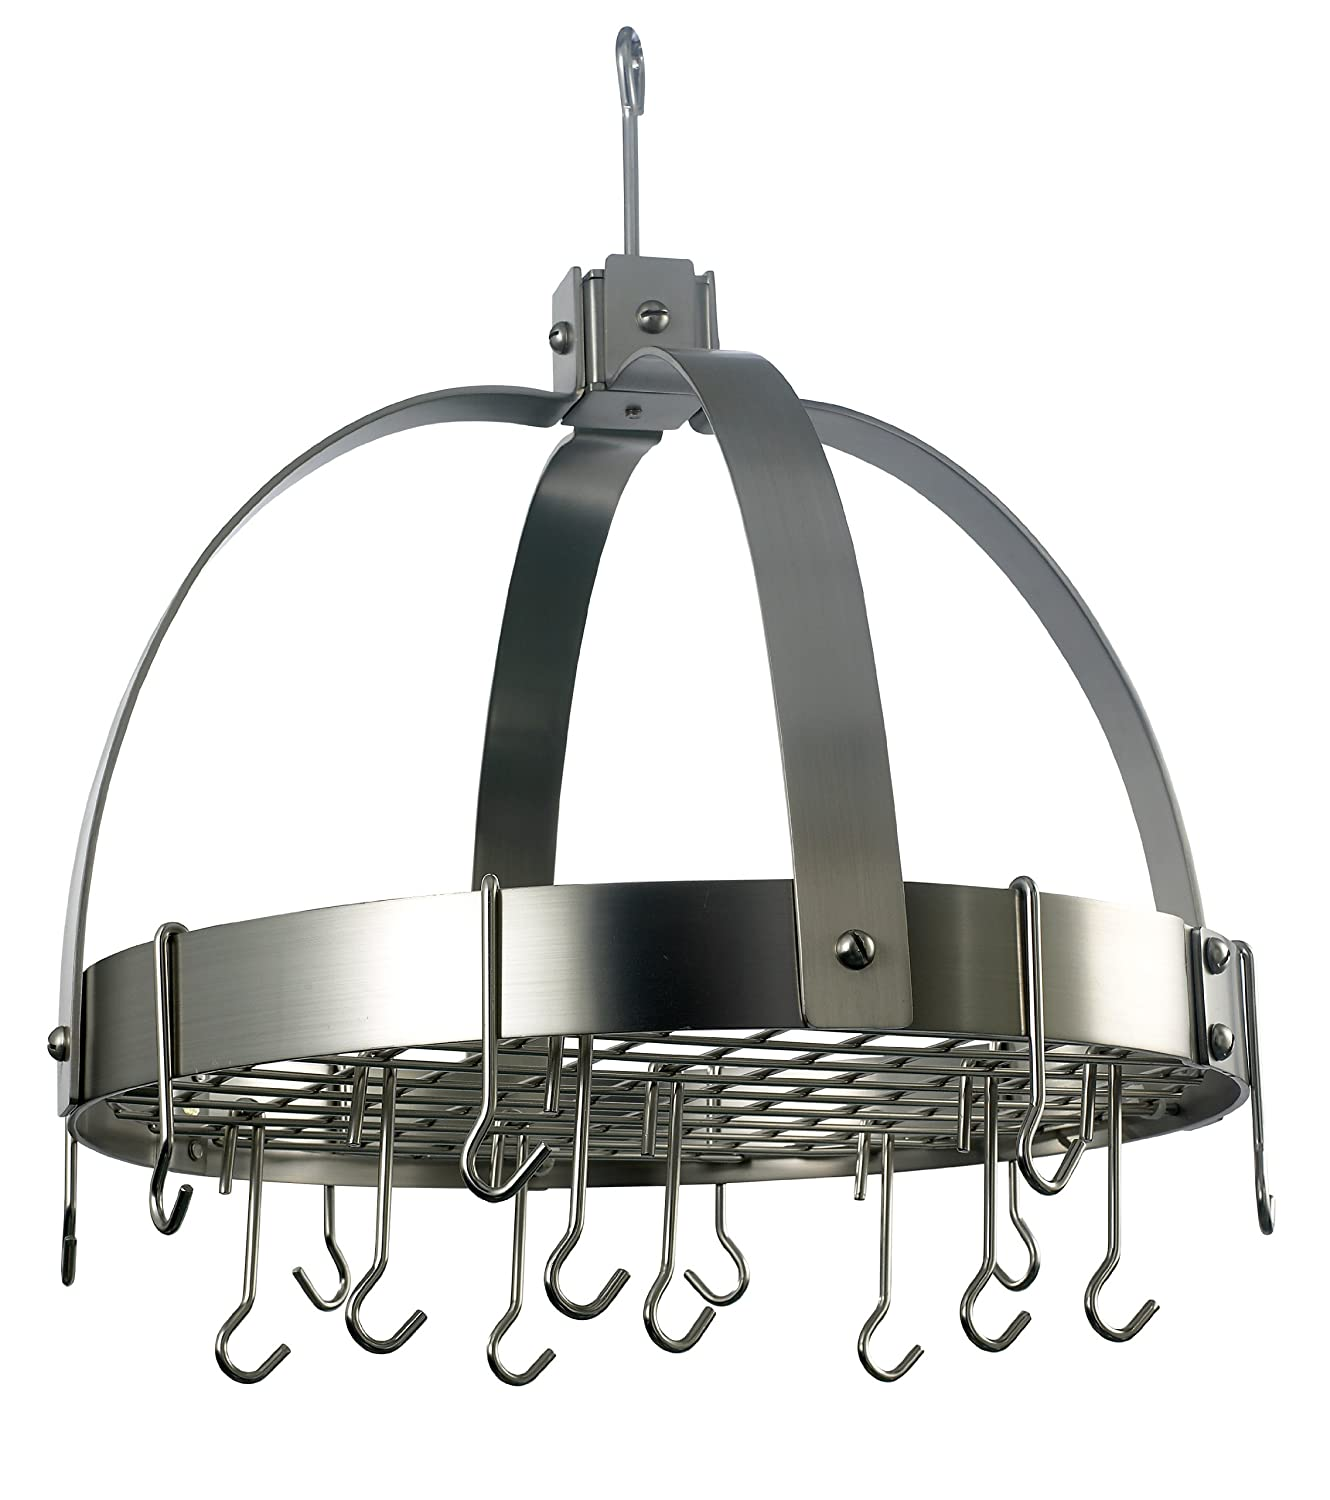 oiled with old dp amazon dining x com hooks dome dutch lights kitchen bronze pot rack racks